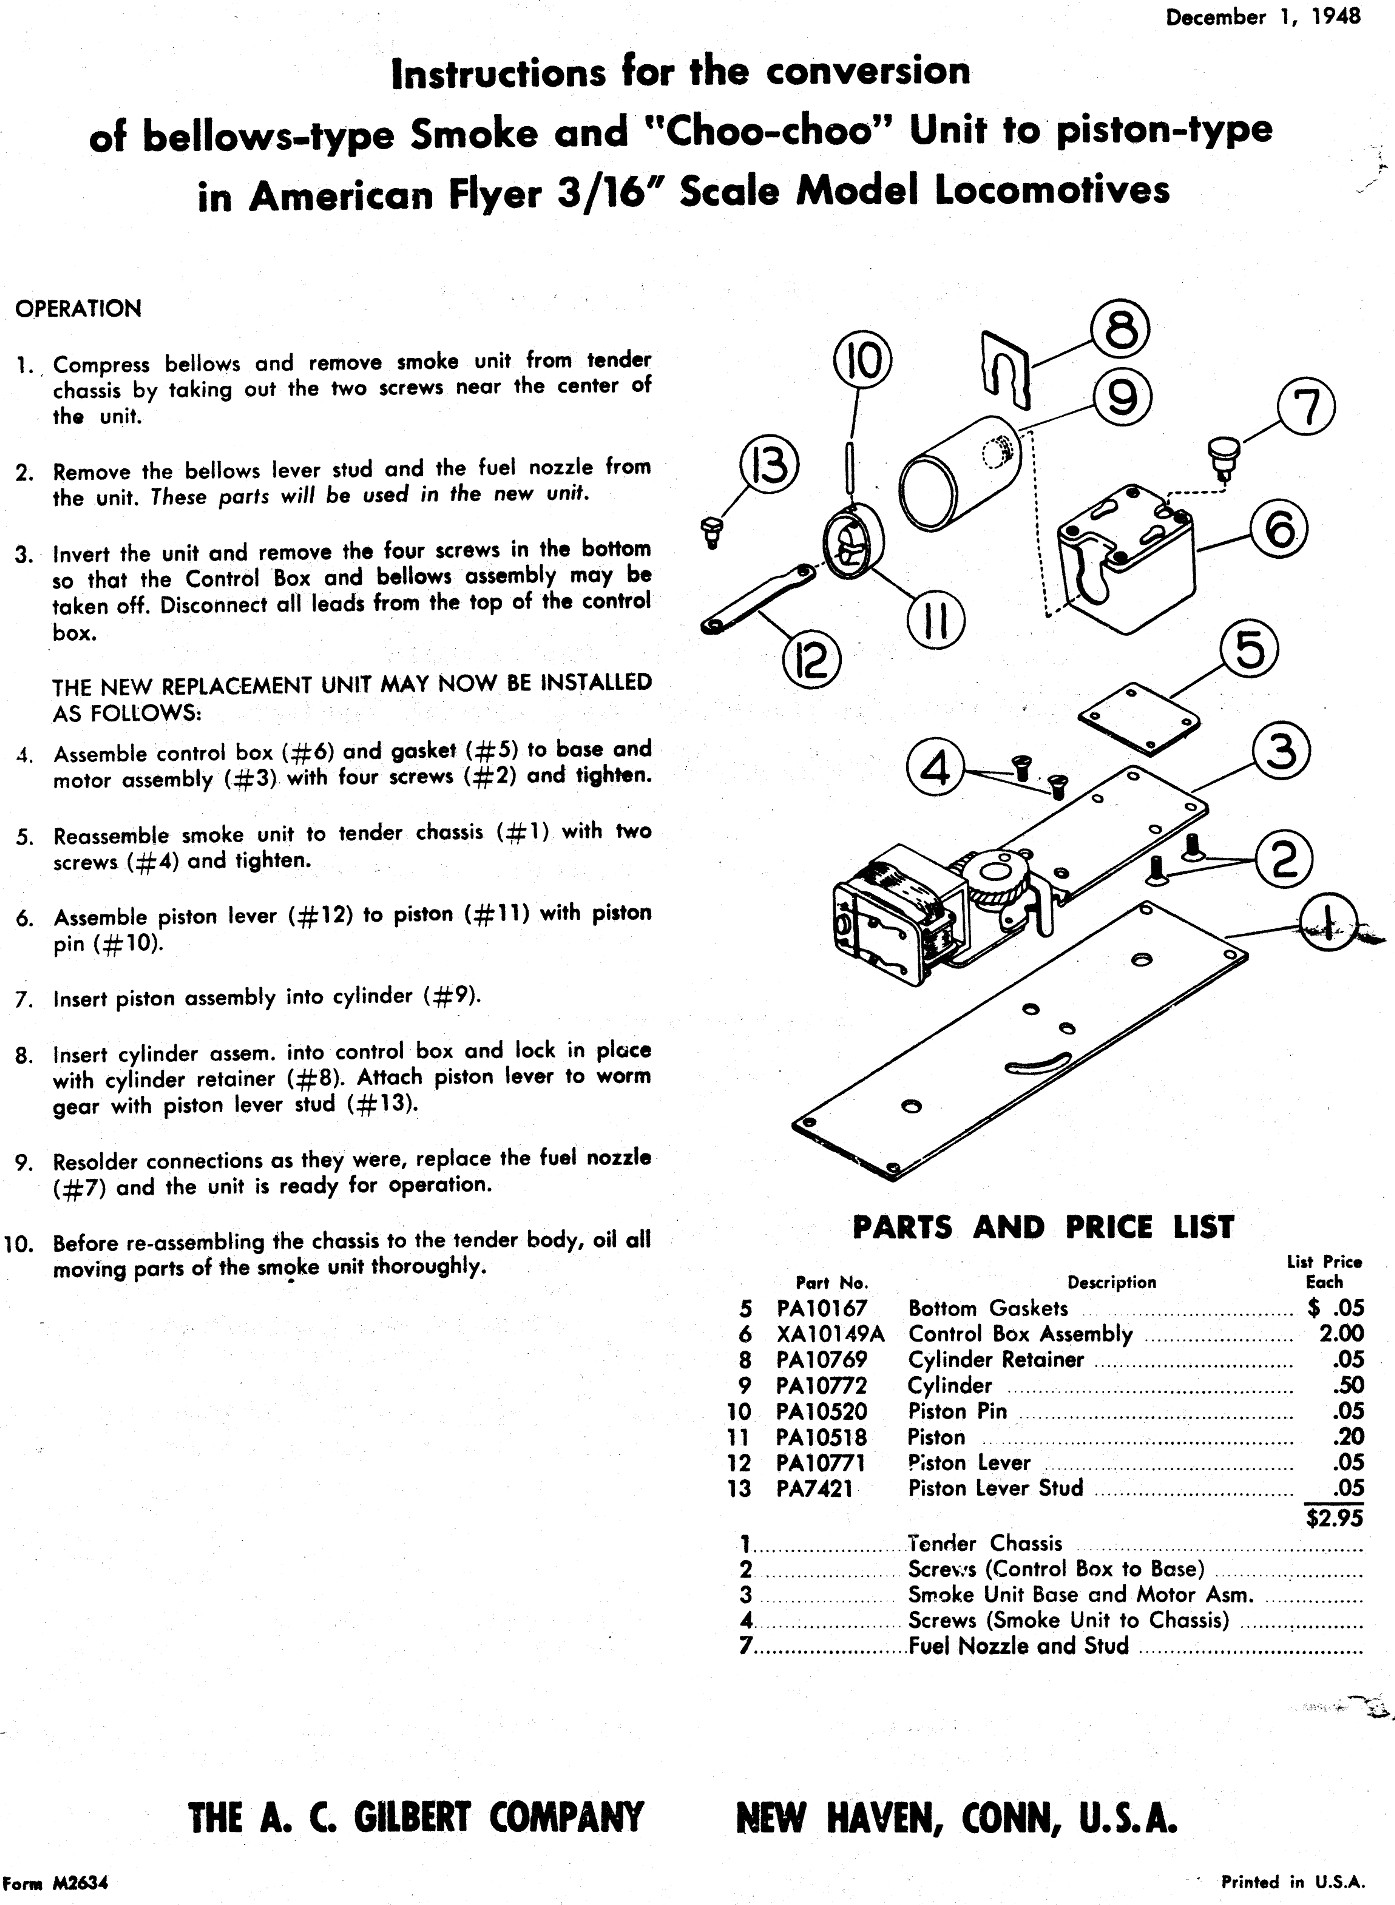 American Flyer E Unit Repair User Guide Books Review Wiring Diagrams Instructions For The Conversion Of Bellow Type Smoke Choo To Piston Train Locomotive